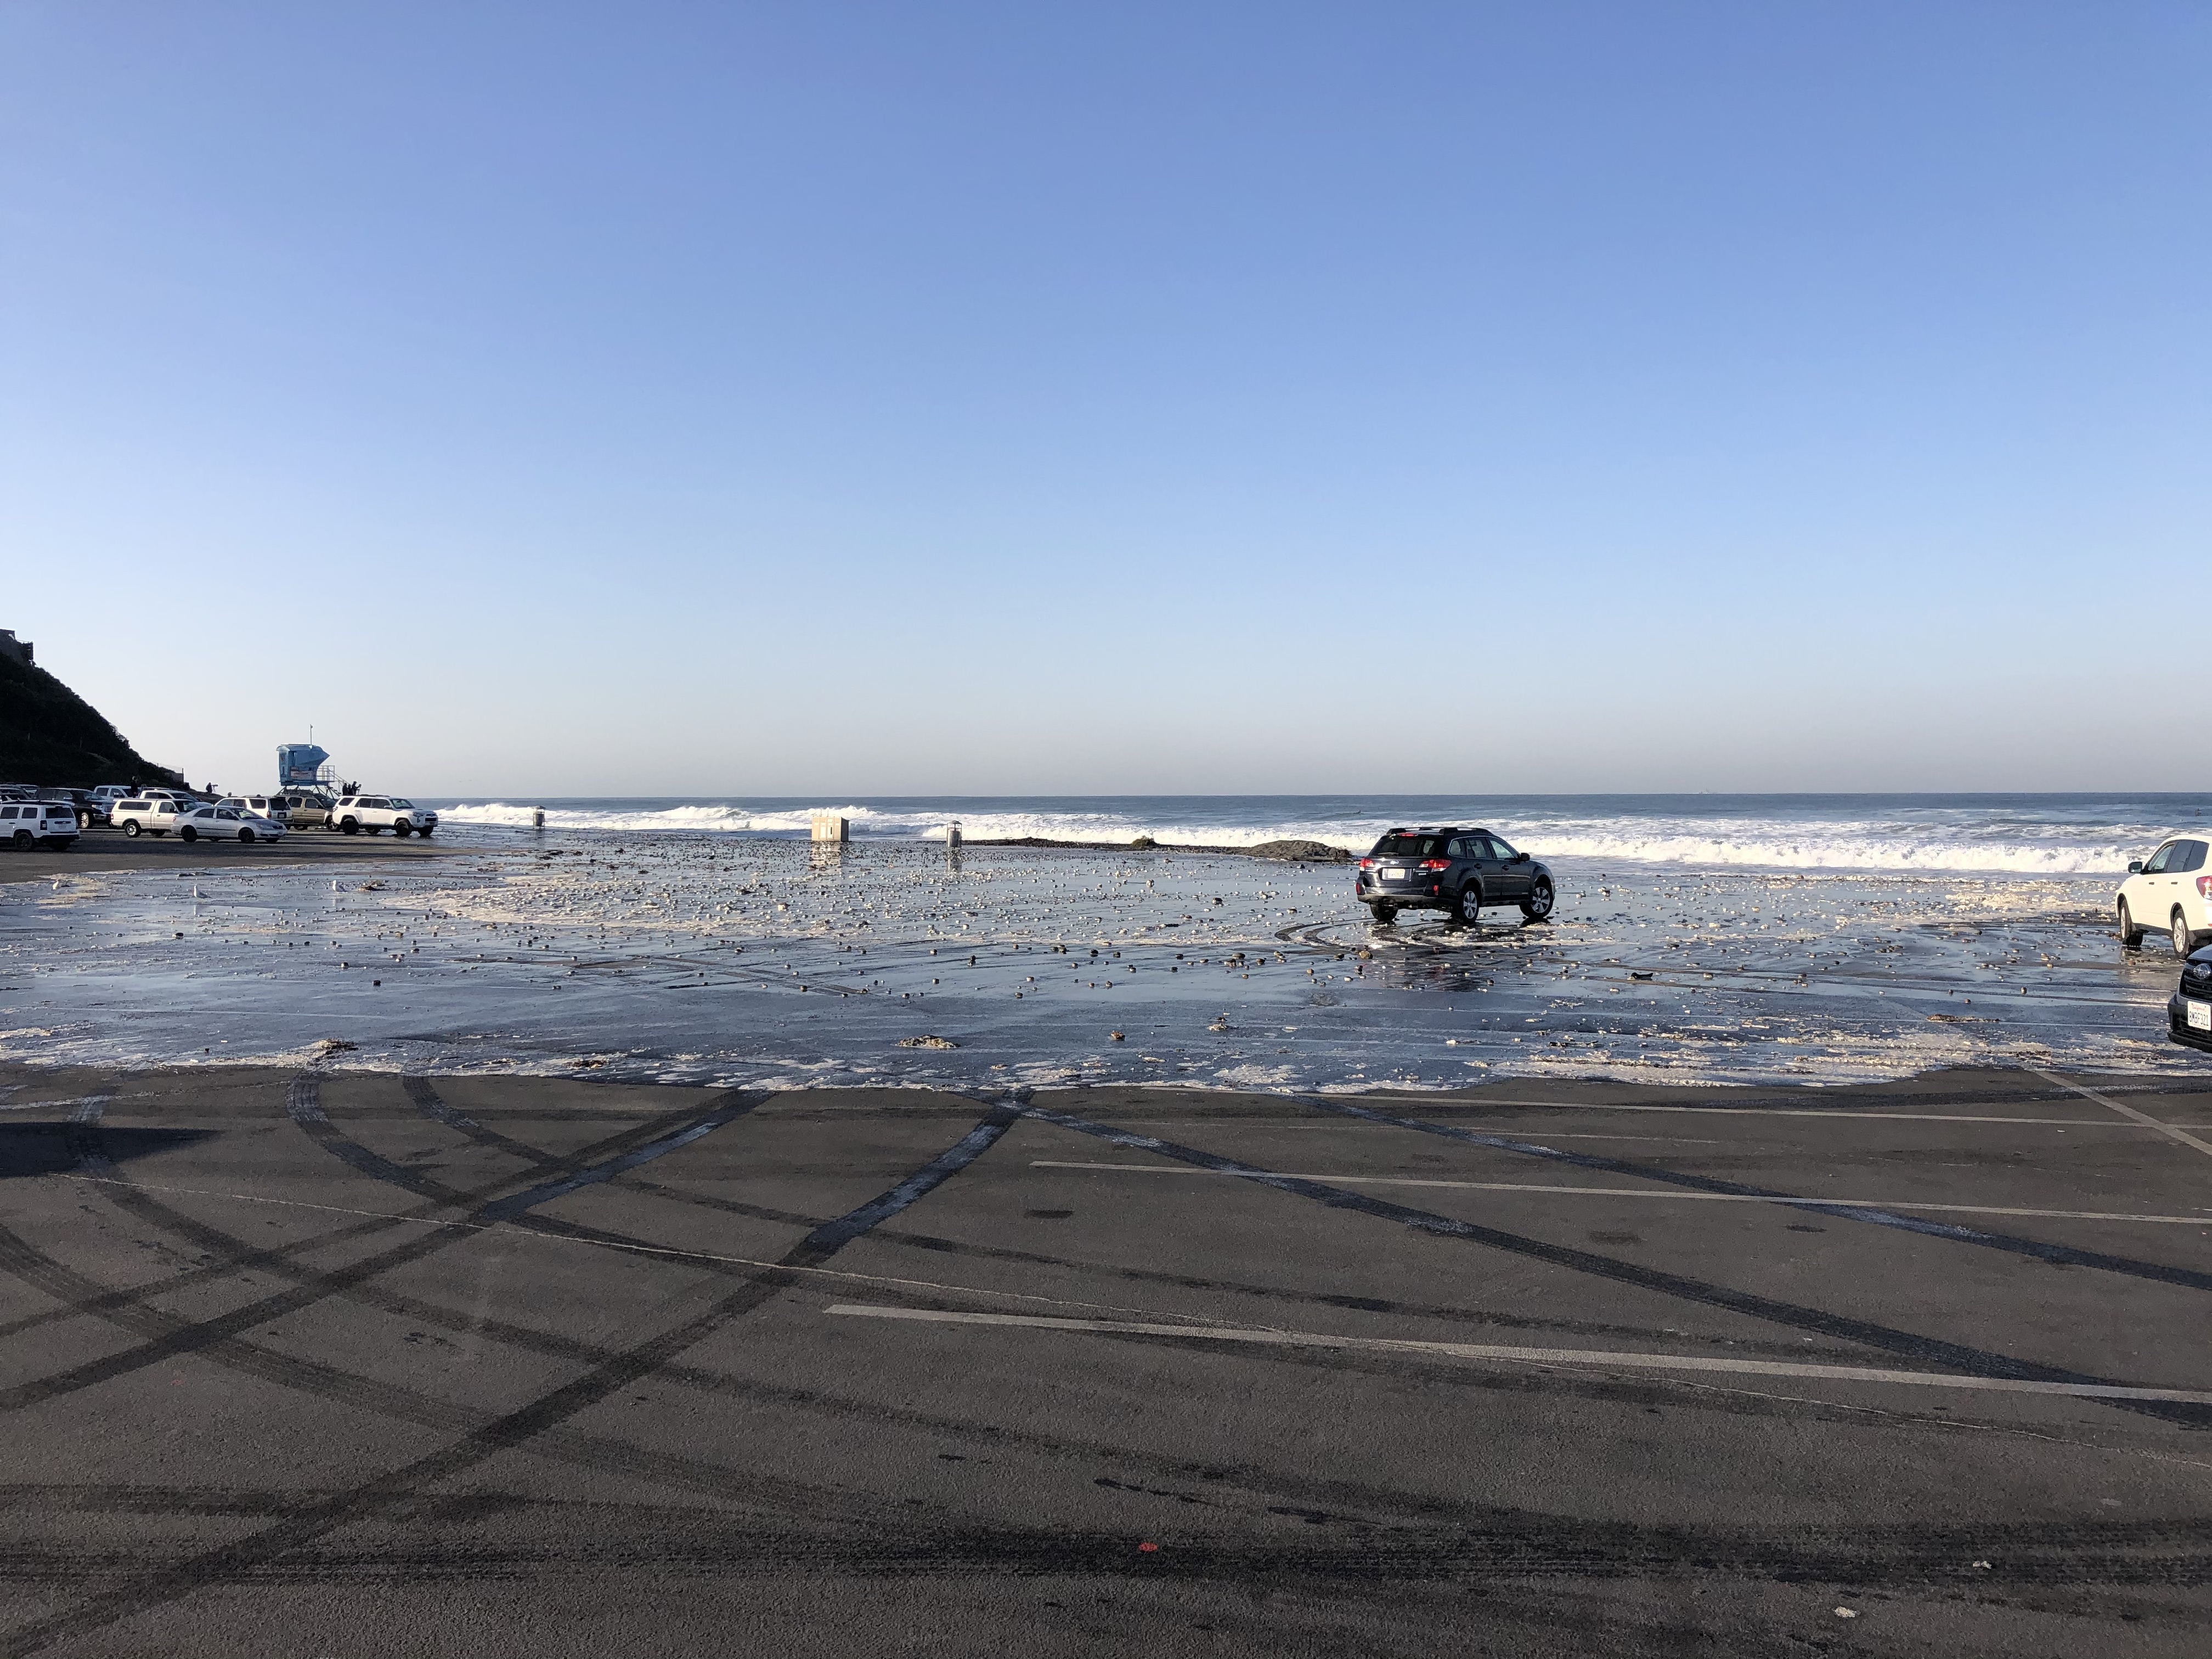 image of flooded beach parking lot caused by combined high tide and moderate swelll